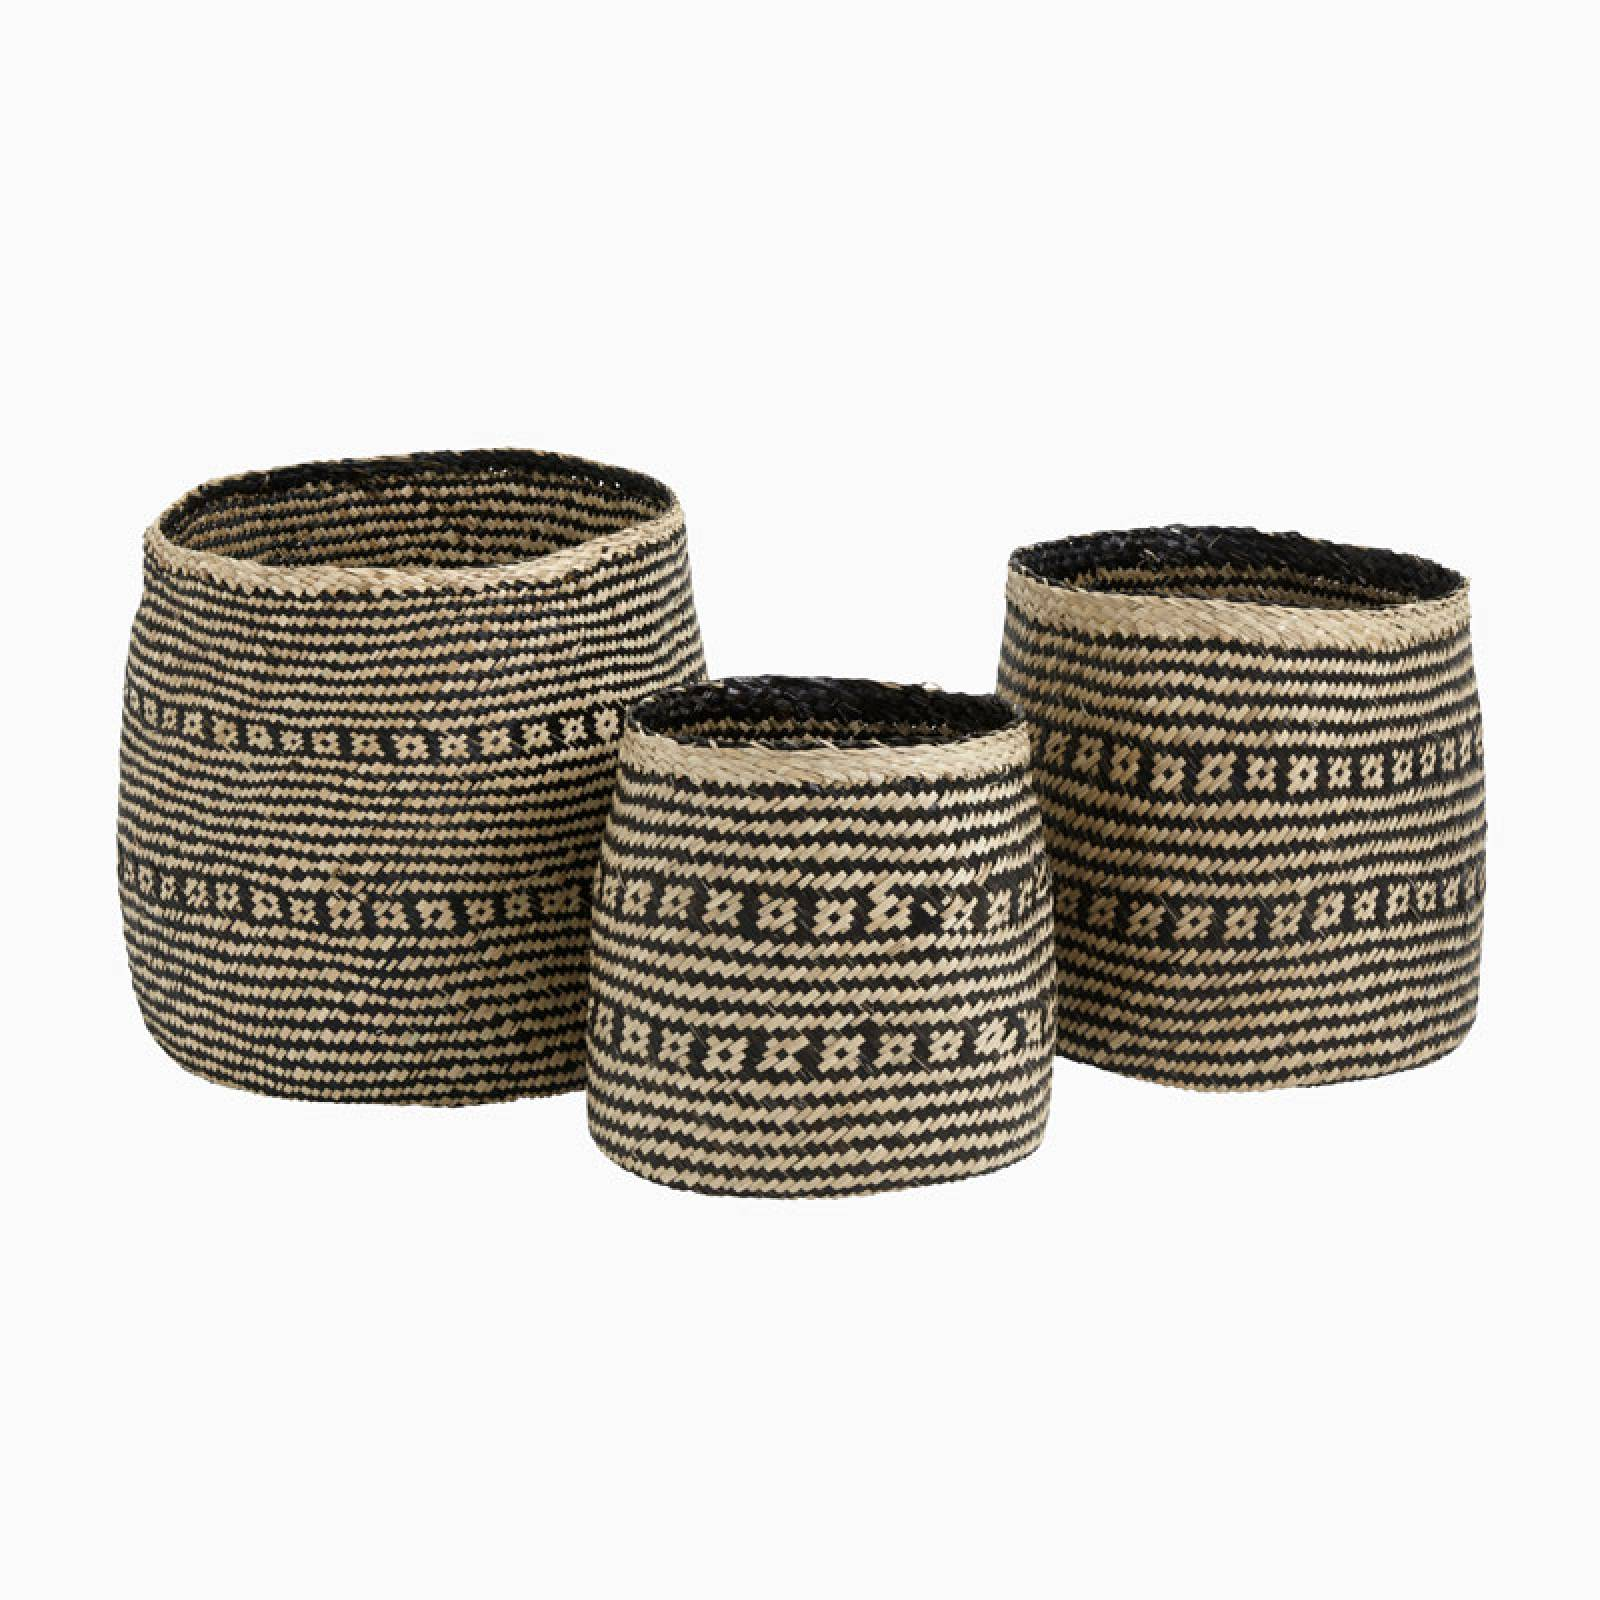 Cozy Natural And Black Seagrass Basket - Medium 35cm